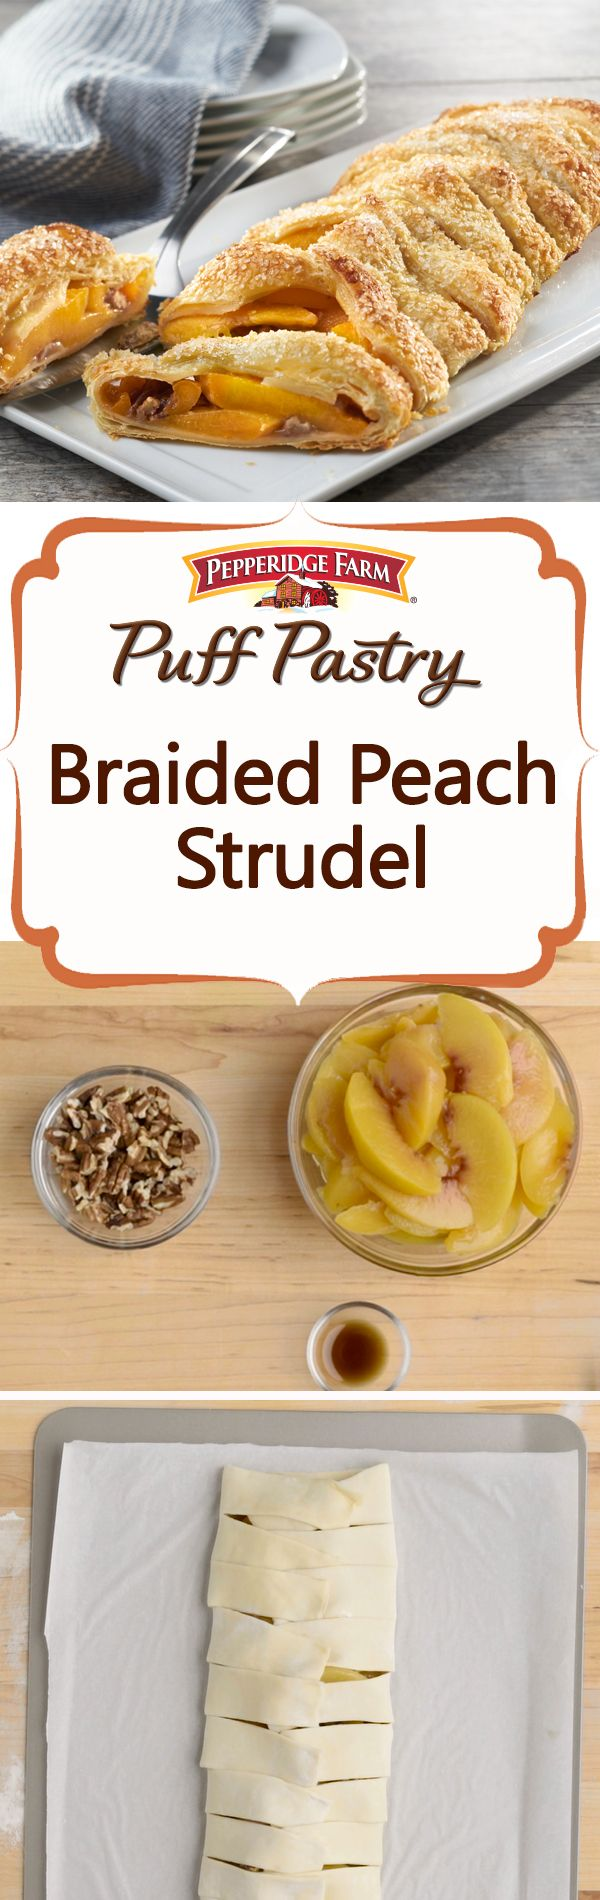 Puff Pastry Braided Peach Strudel recipe. Nothing says summertime quite like sweet peaches! Make the most of nature's summer bounty with this outstanding, easy dessert. Peel and slice fresh peaches, or save on the chopping and substitute frozen for an equally delicious treat. Prepared Puff Pastry sheets are simply braided around a filling of peaches, chopped pecan, brown sugar and a touch of vanilla. This is a perfect dessert served with a scoop of ice cream, or a lovely addition to brunch.